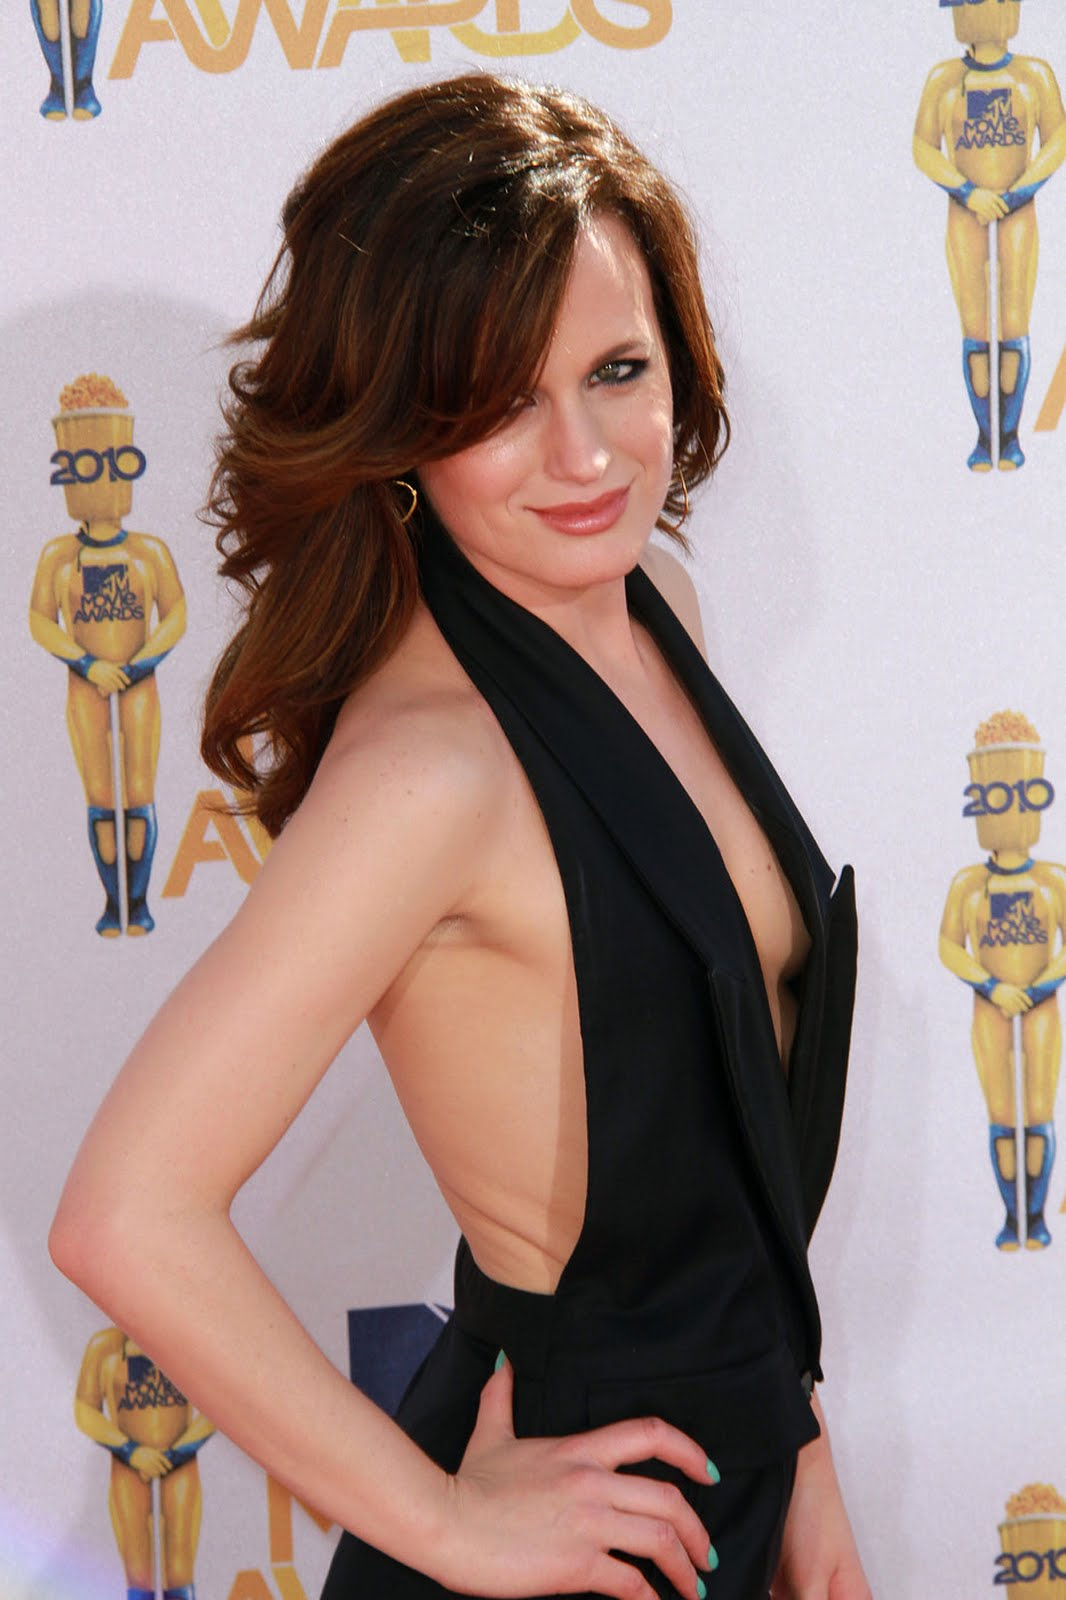 elizabeth-reaser-topless-photos